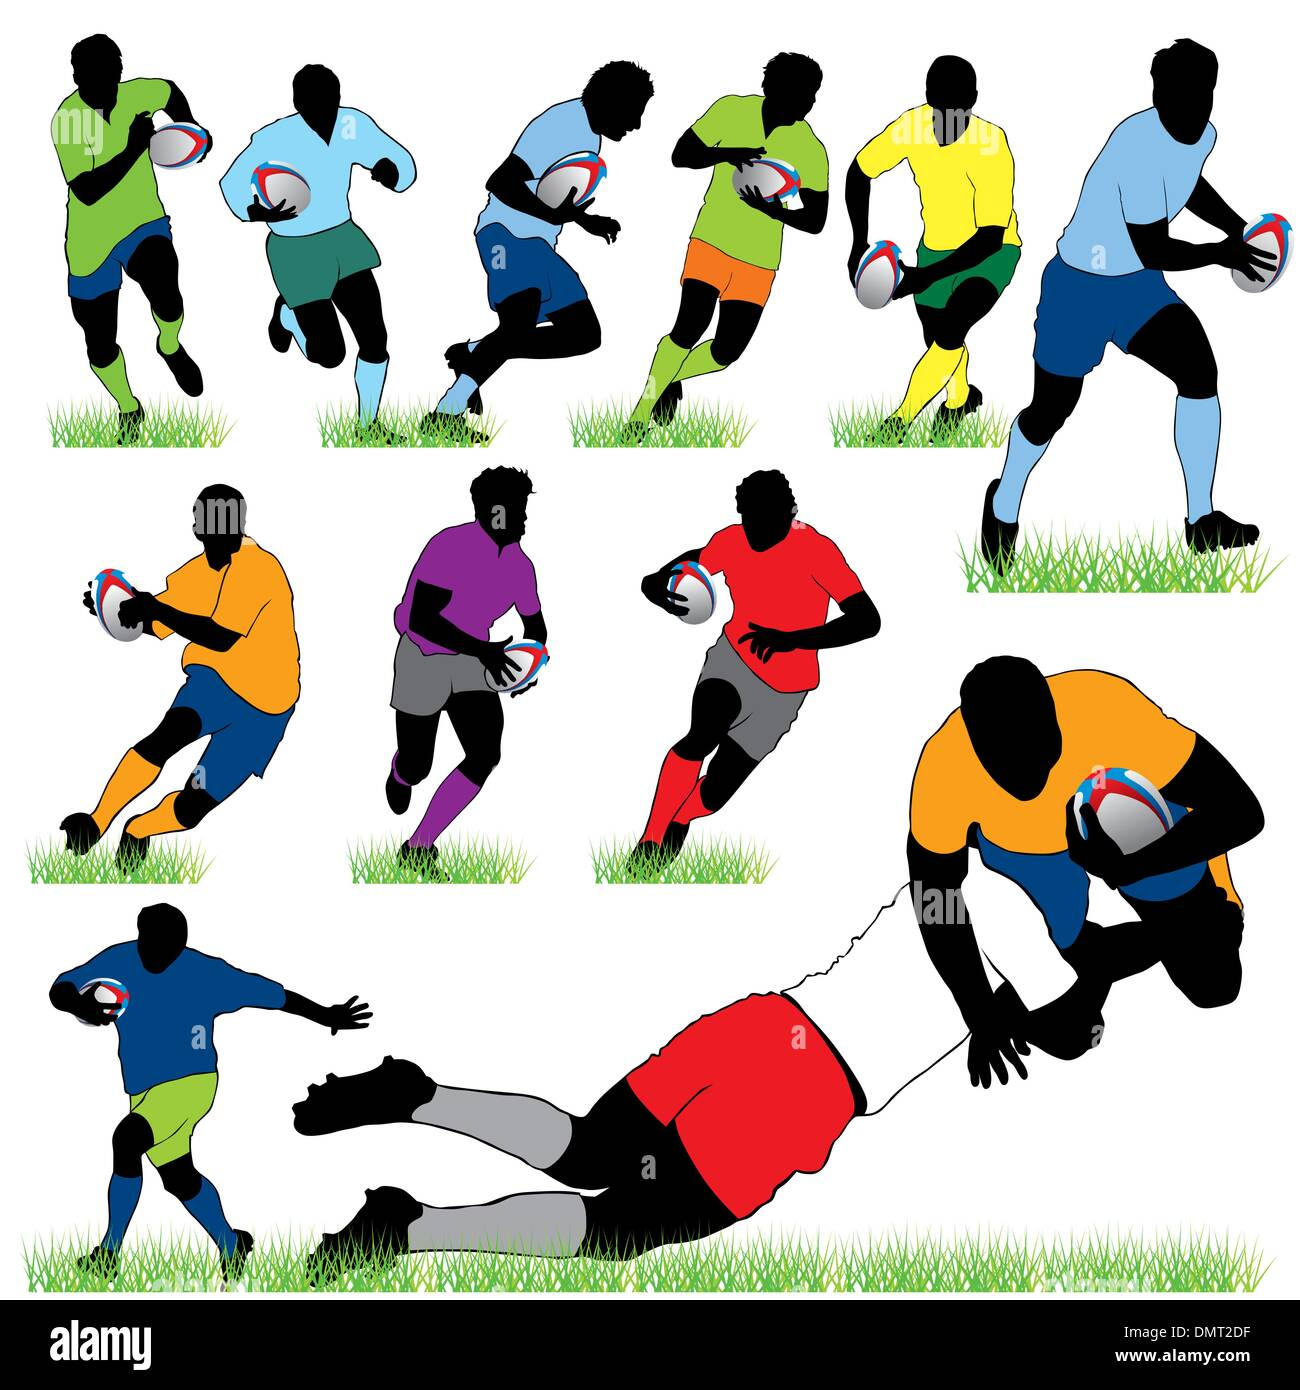 12 Rugby Players Silhouettes Set - Stock Vector